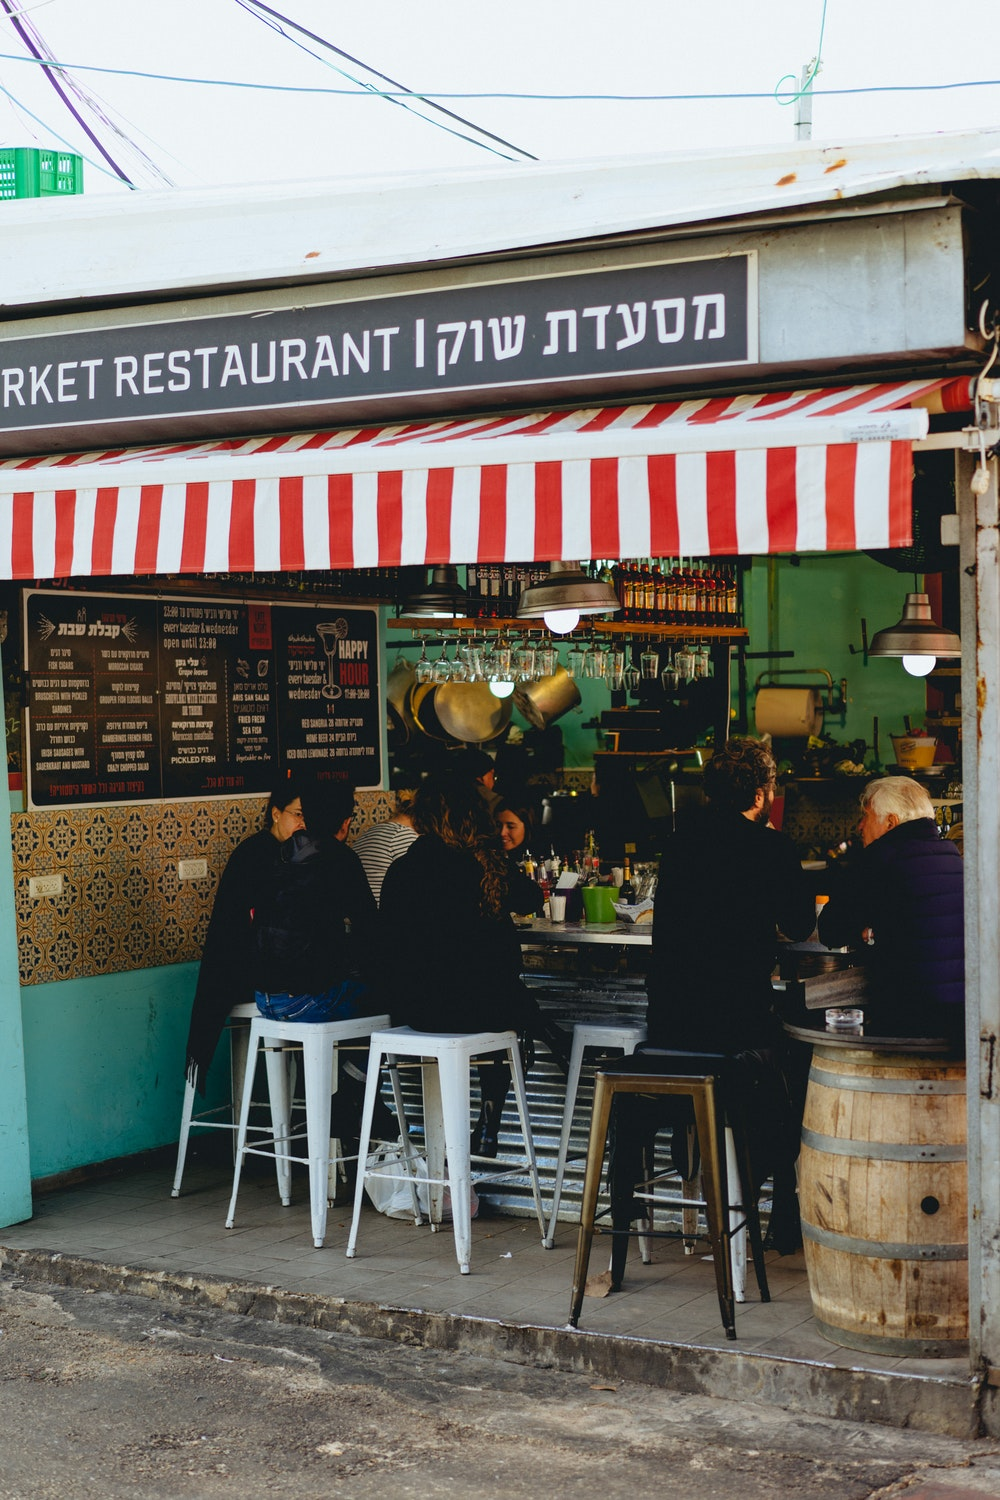 People eating at a market restaurat in Tel Aviv, Israel